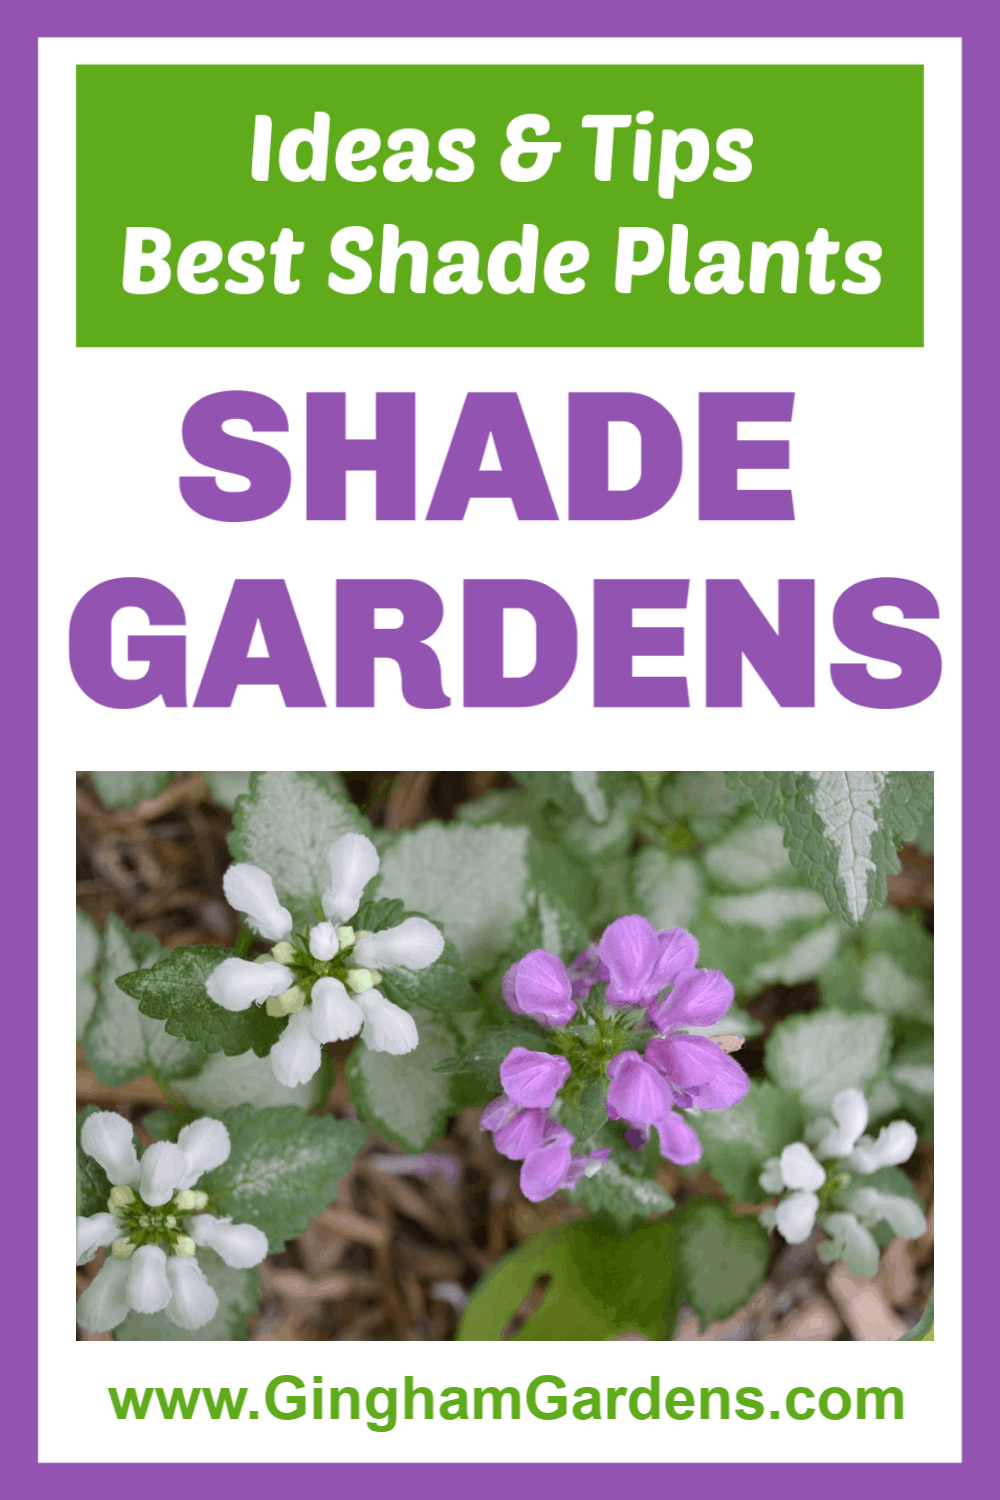 Image of a garden plant with text overlay - Shade Gardens